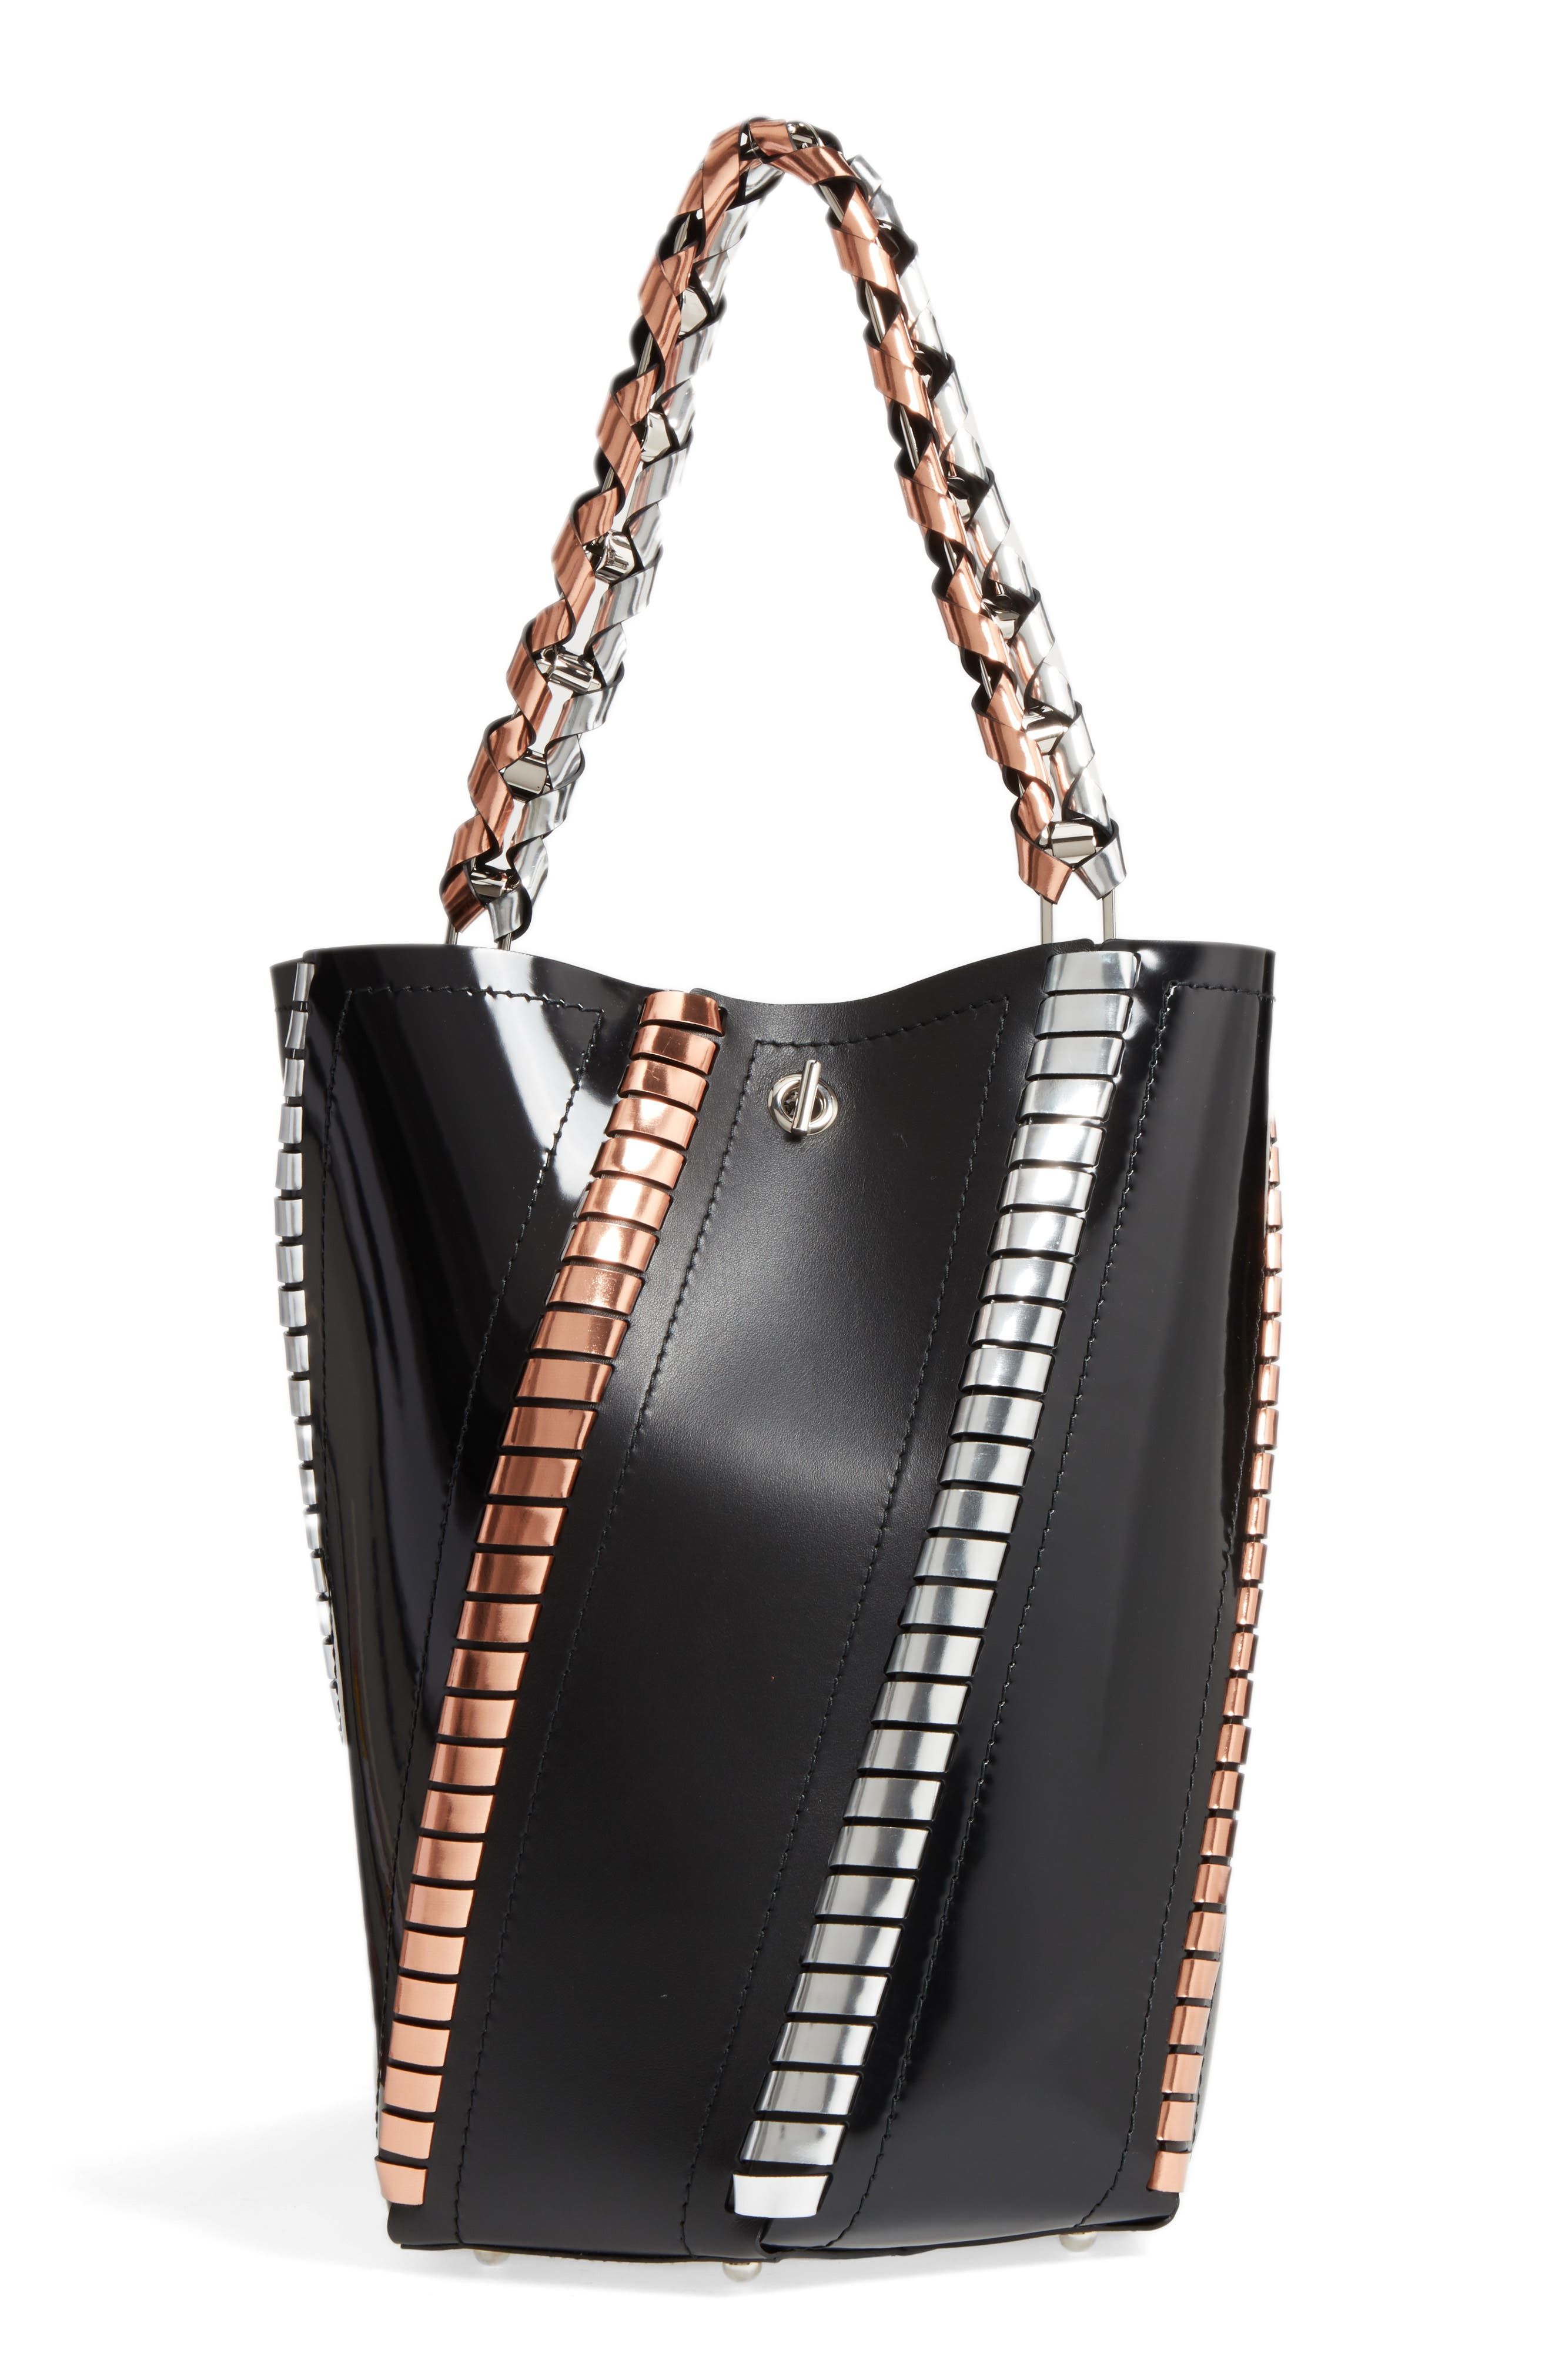 Medium Hex Metallic Whipstitch Leather Bucket Bag,                         Main,                         color, 010